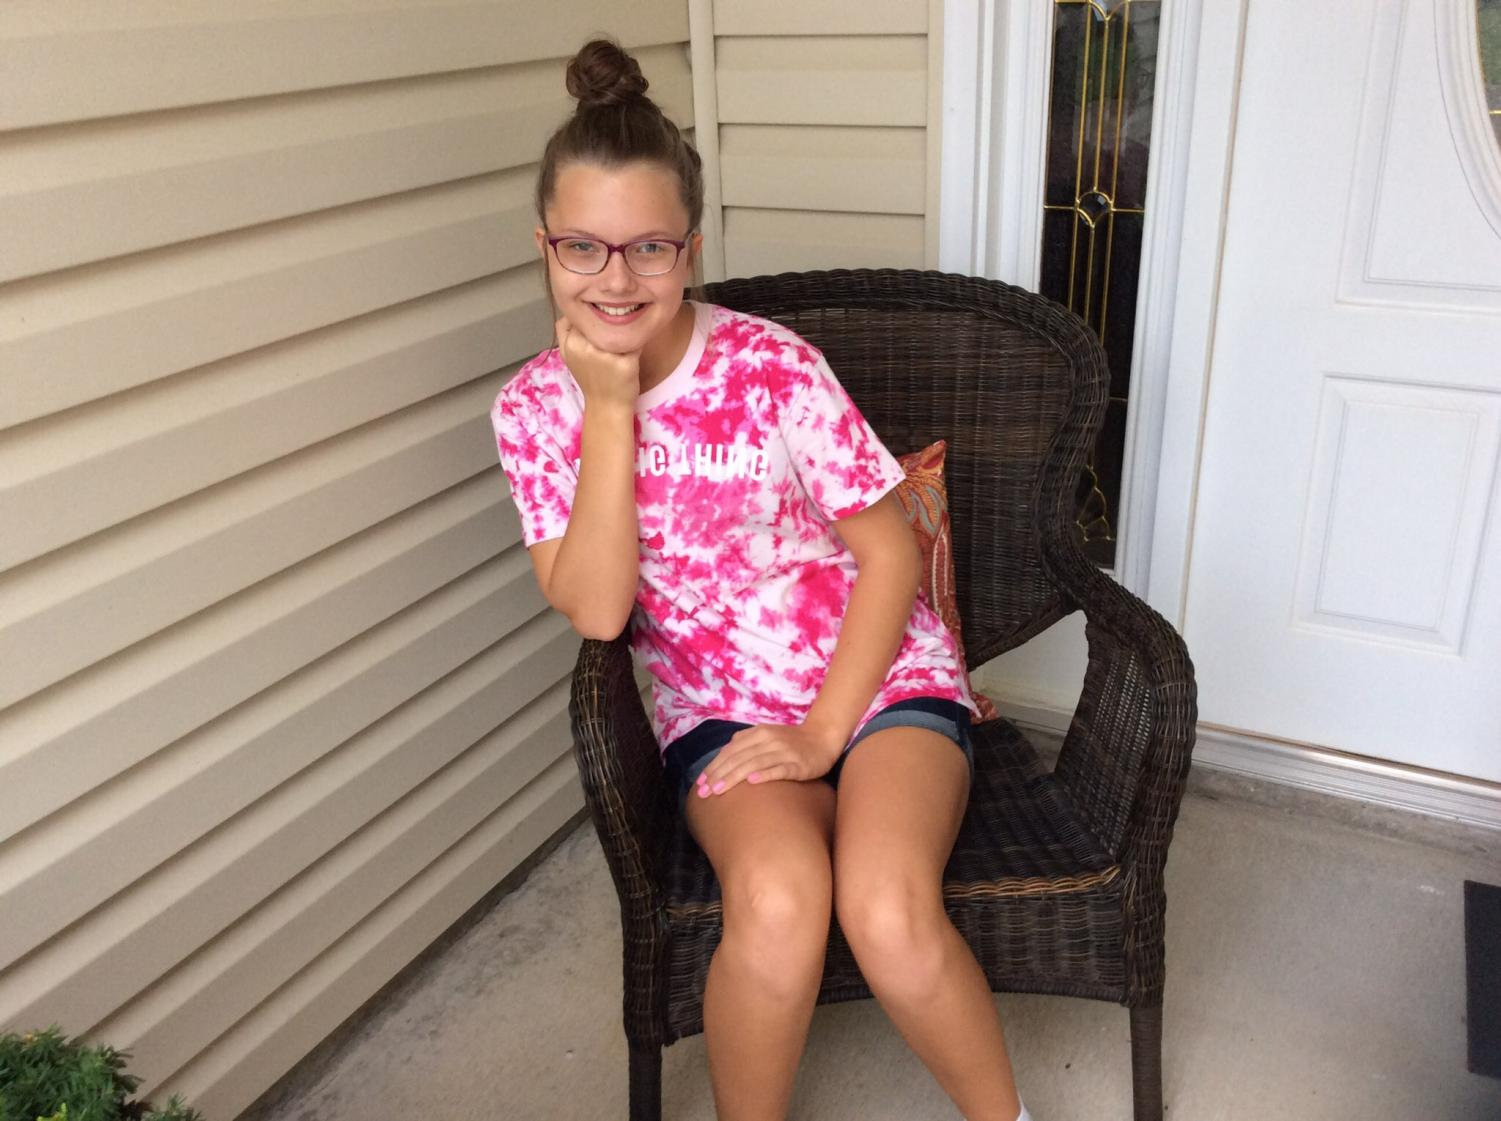 Kaylee Lane, a 7th grader at Emporia Middle School.